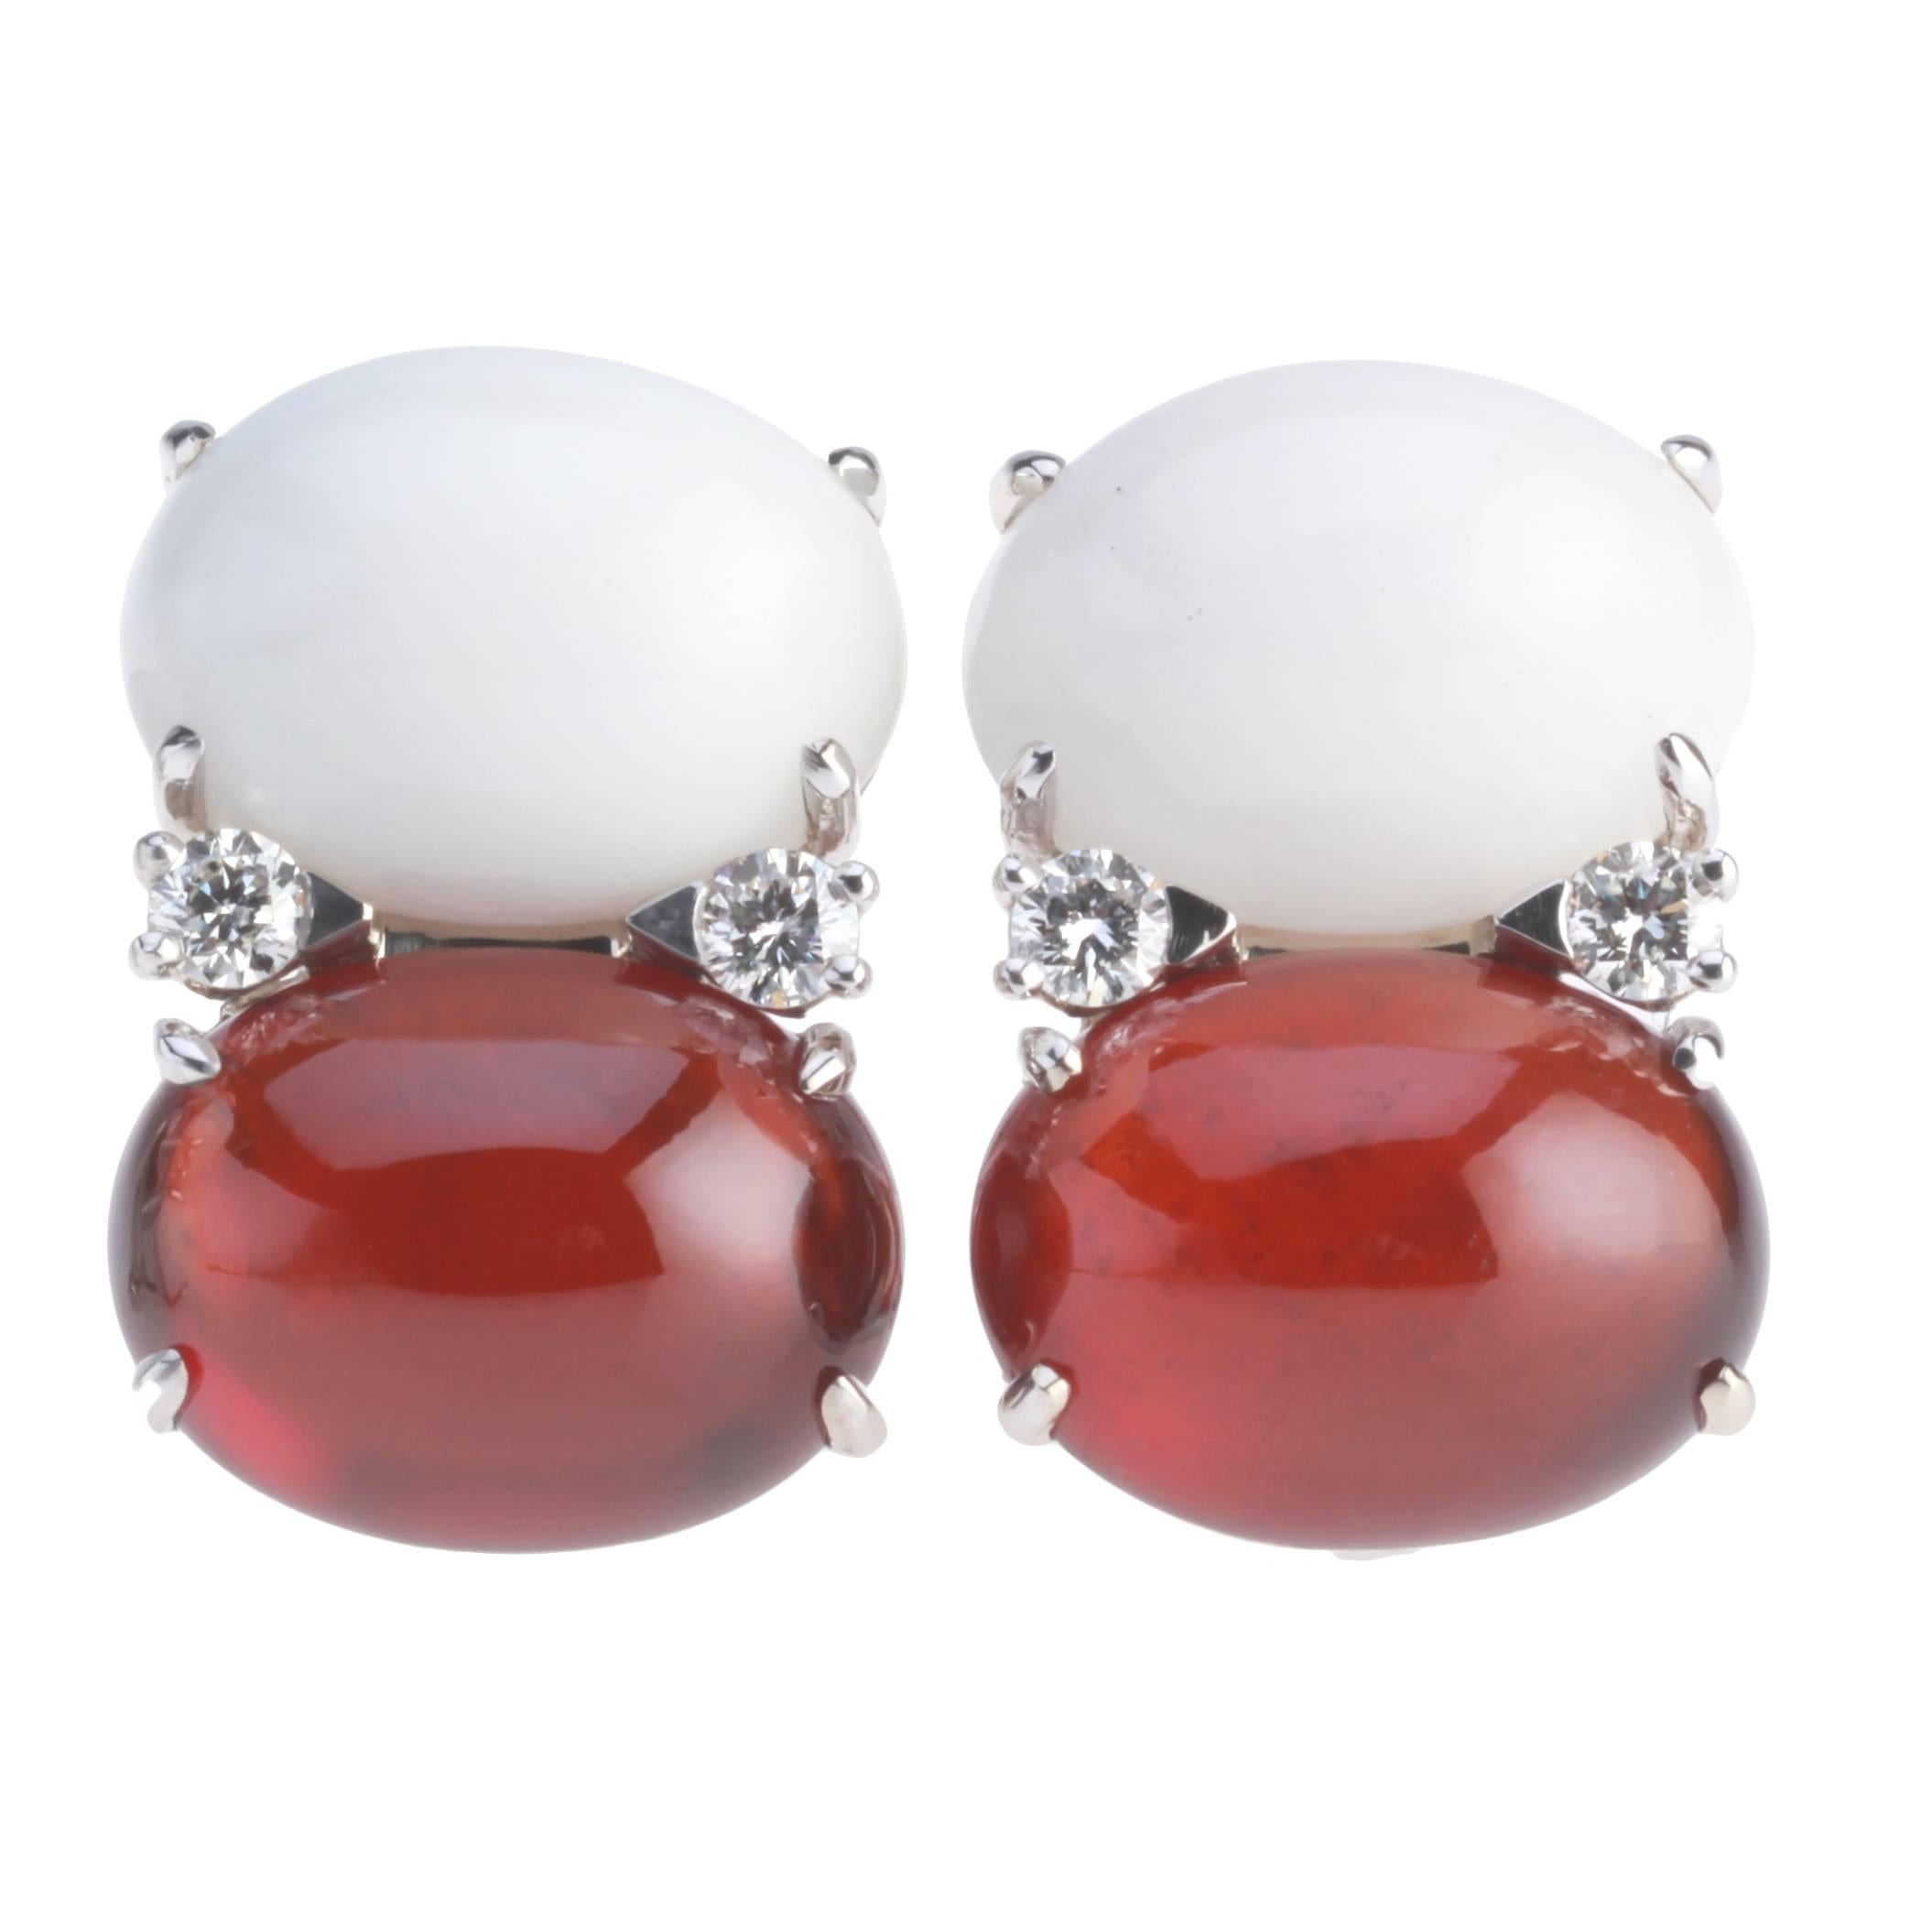 Jumbo GUM DROP™ Earrings with Cabochon White Jade and Garnet and Diamonds